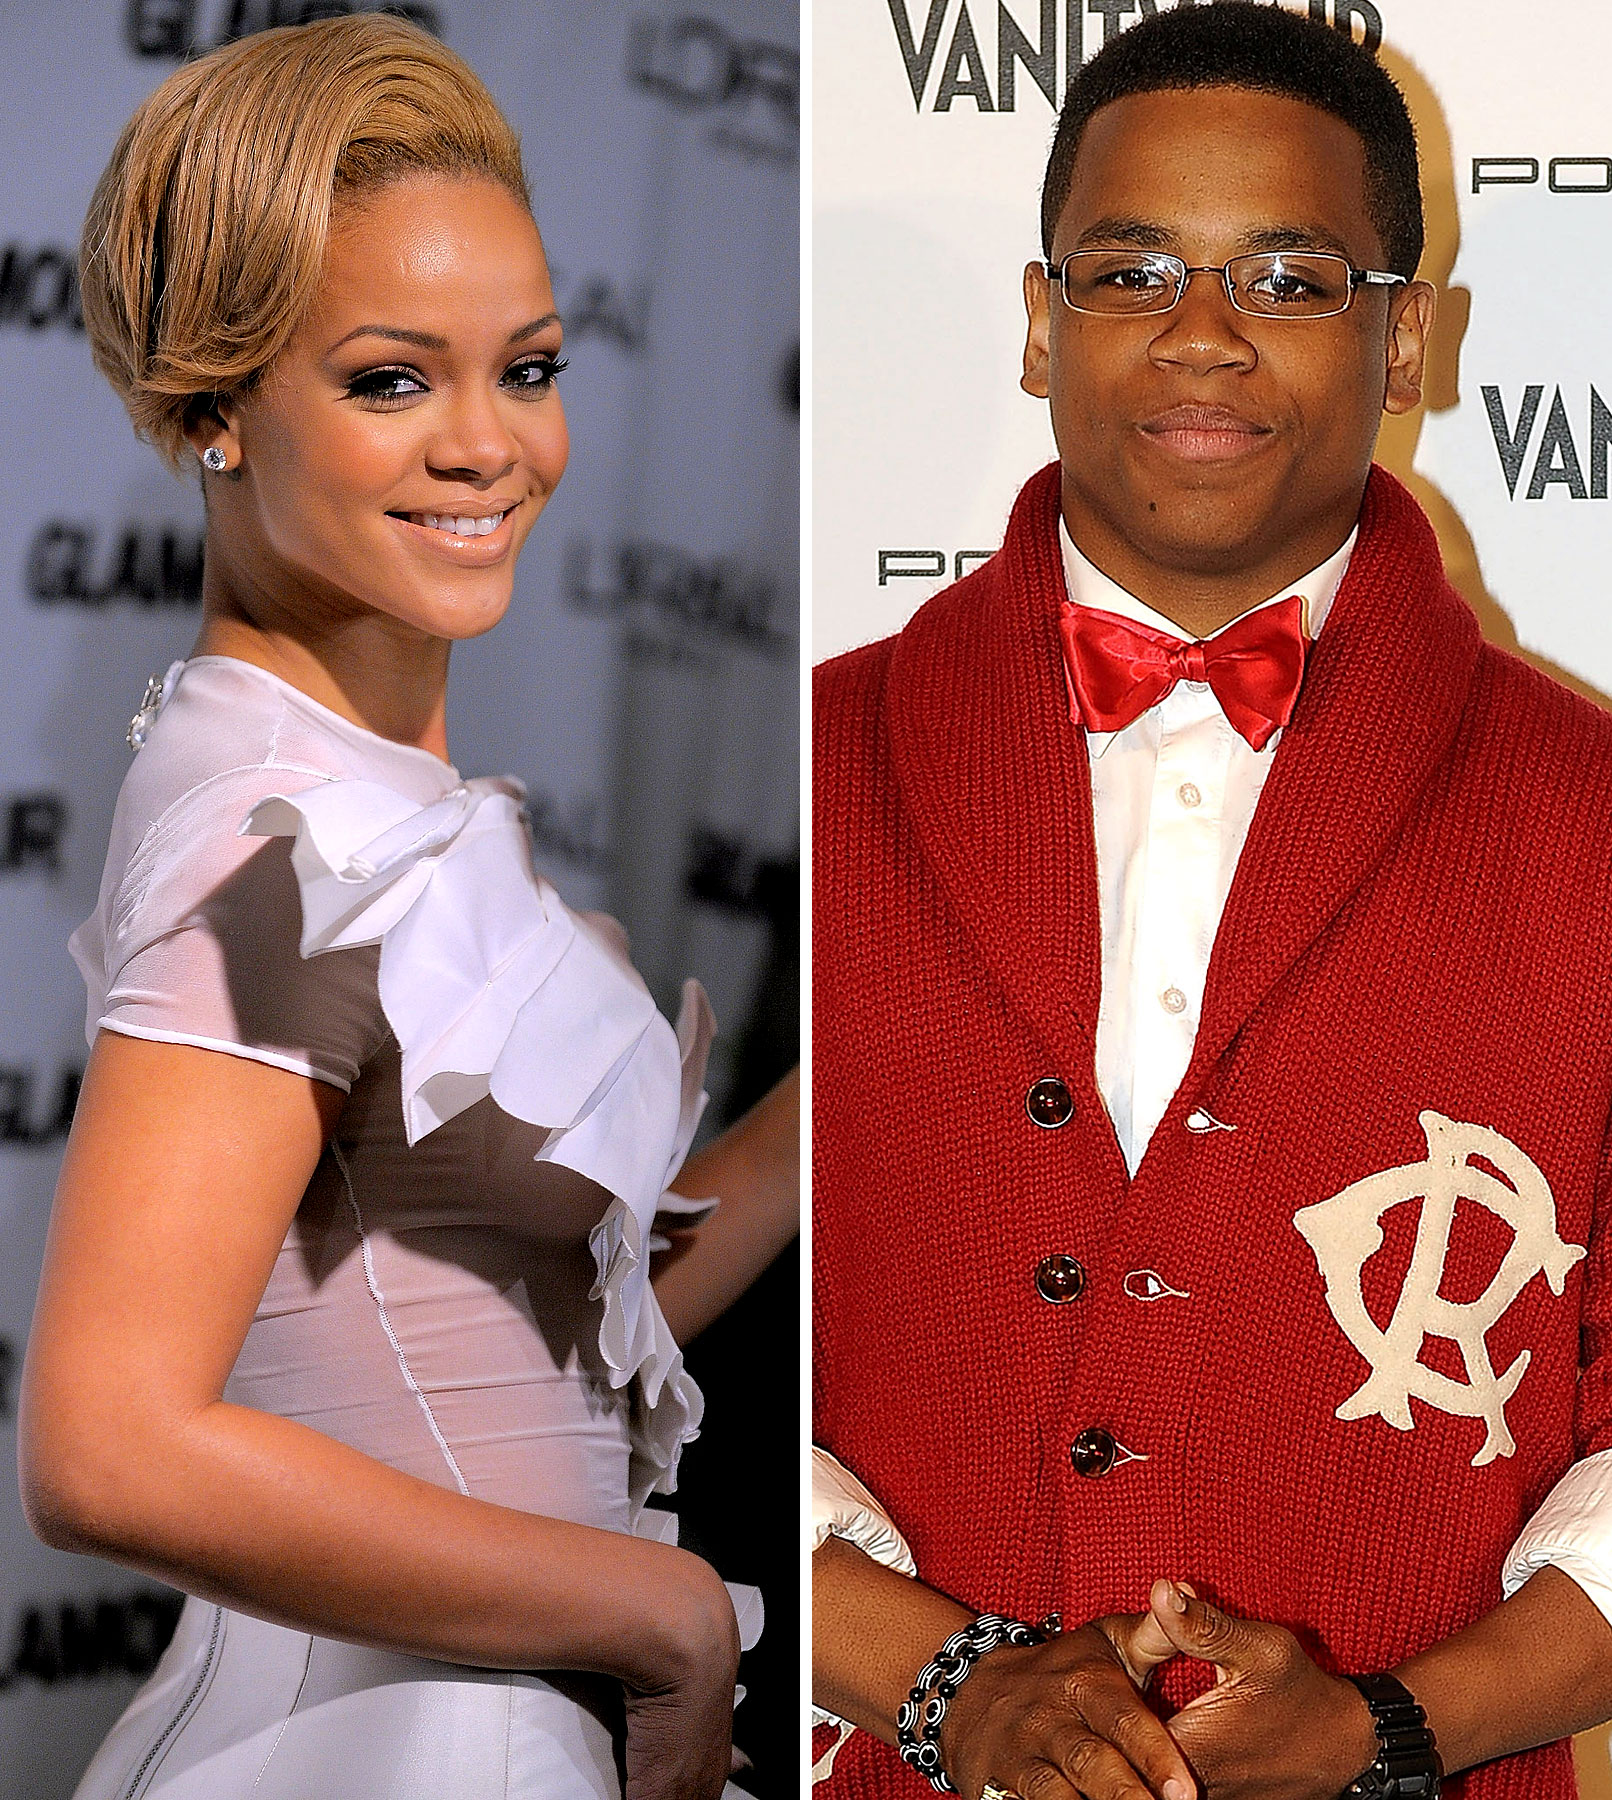 Hookup Alert: Rihanna And Tristan Wilds